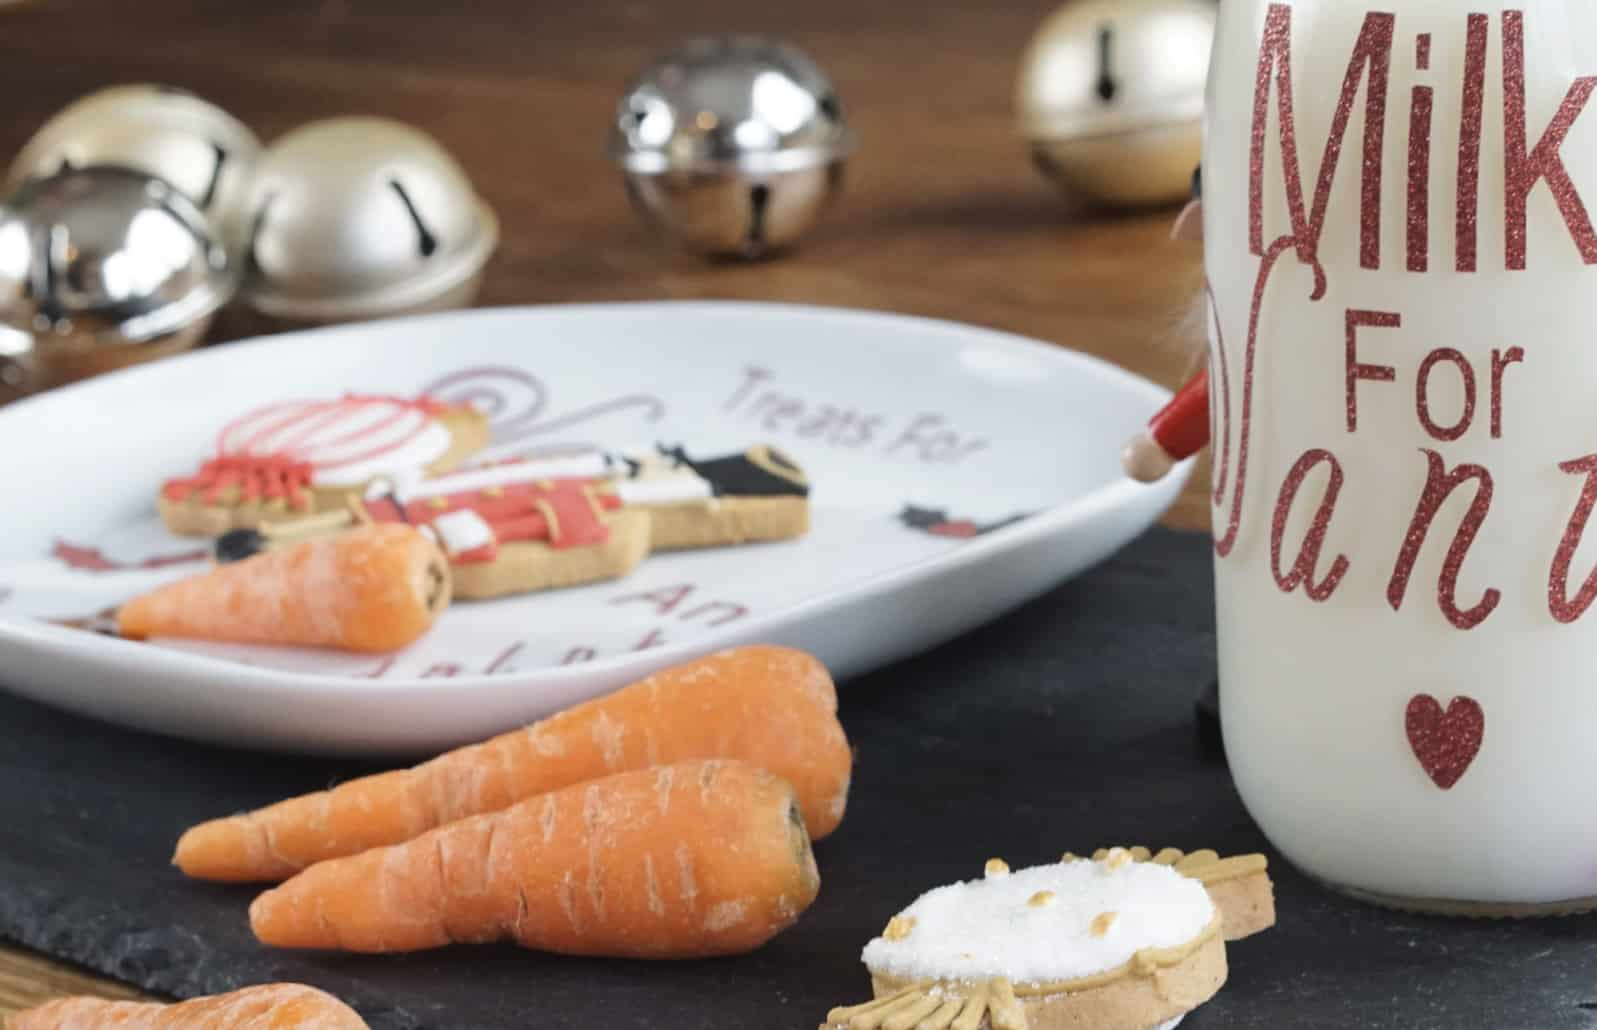 How To Make A Treats For Santa Plate And Bottle